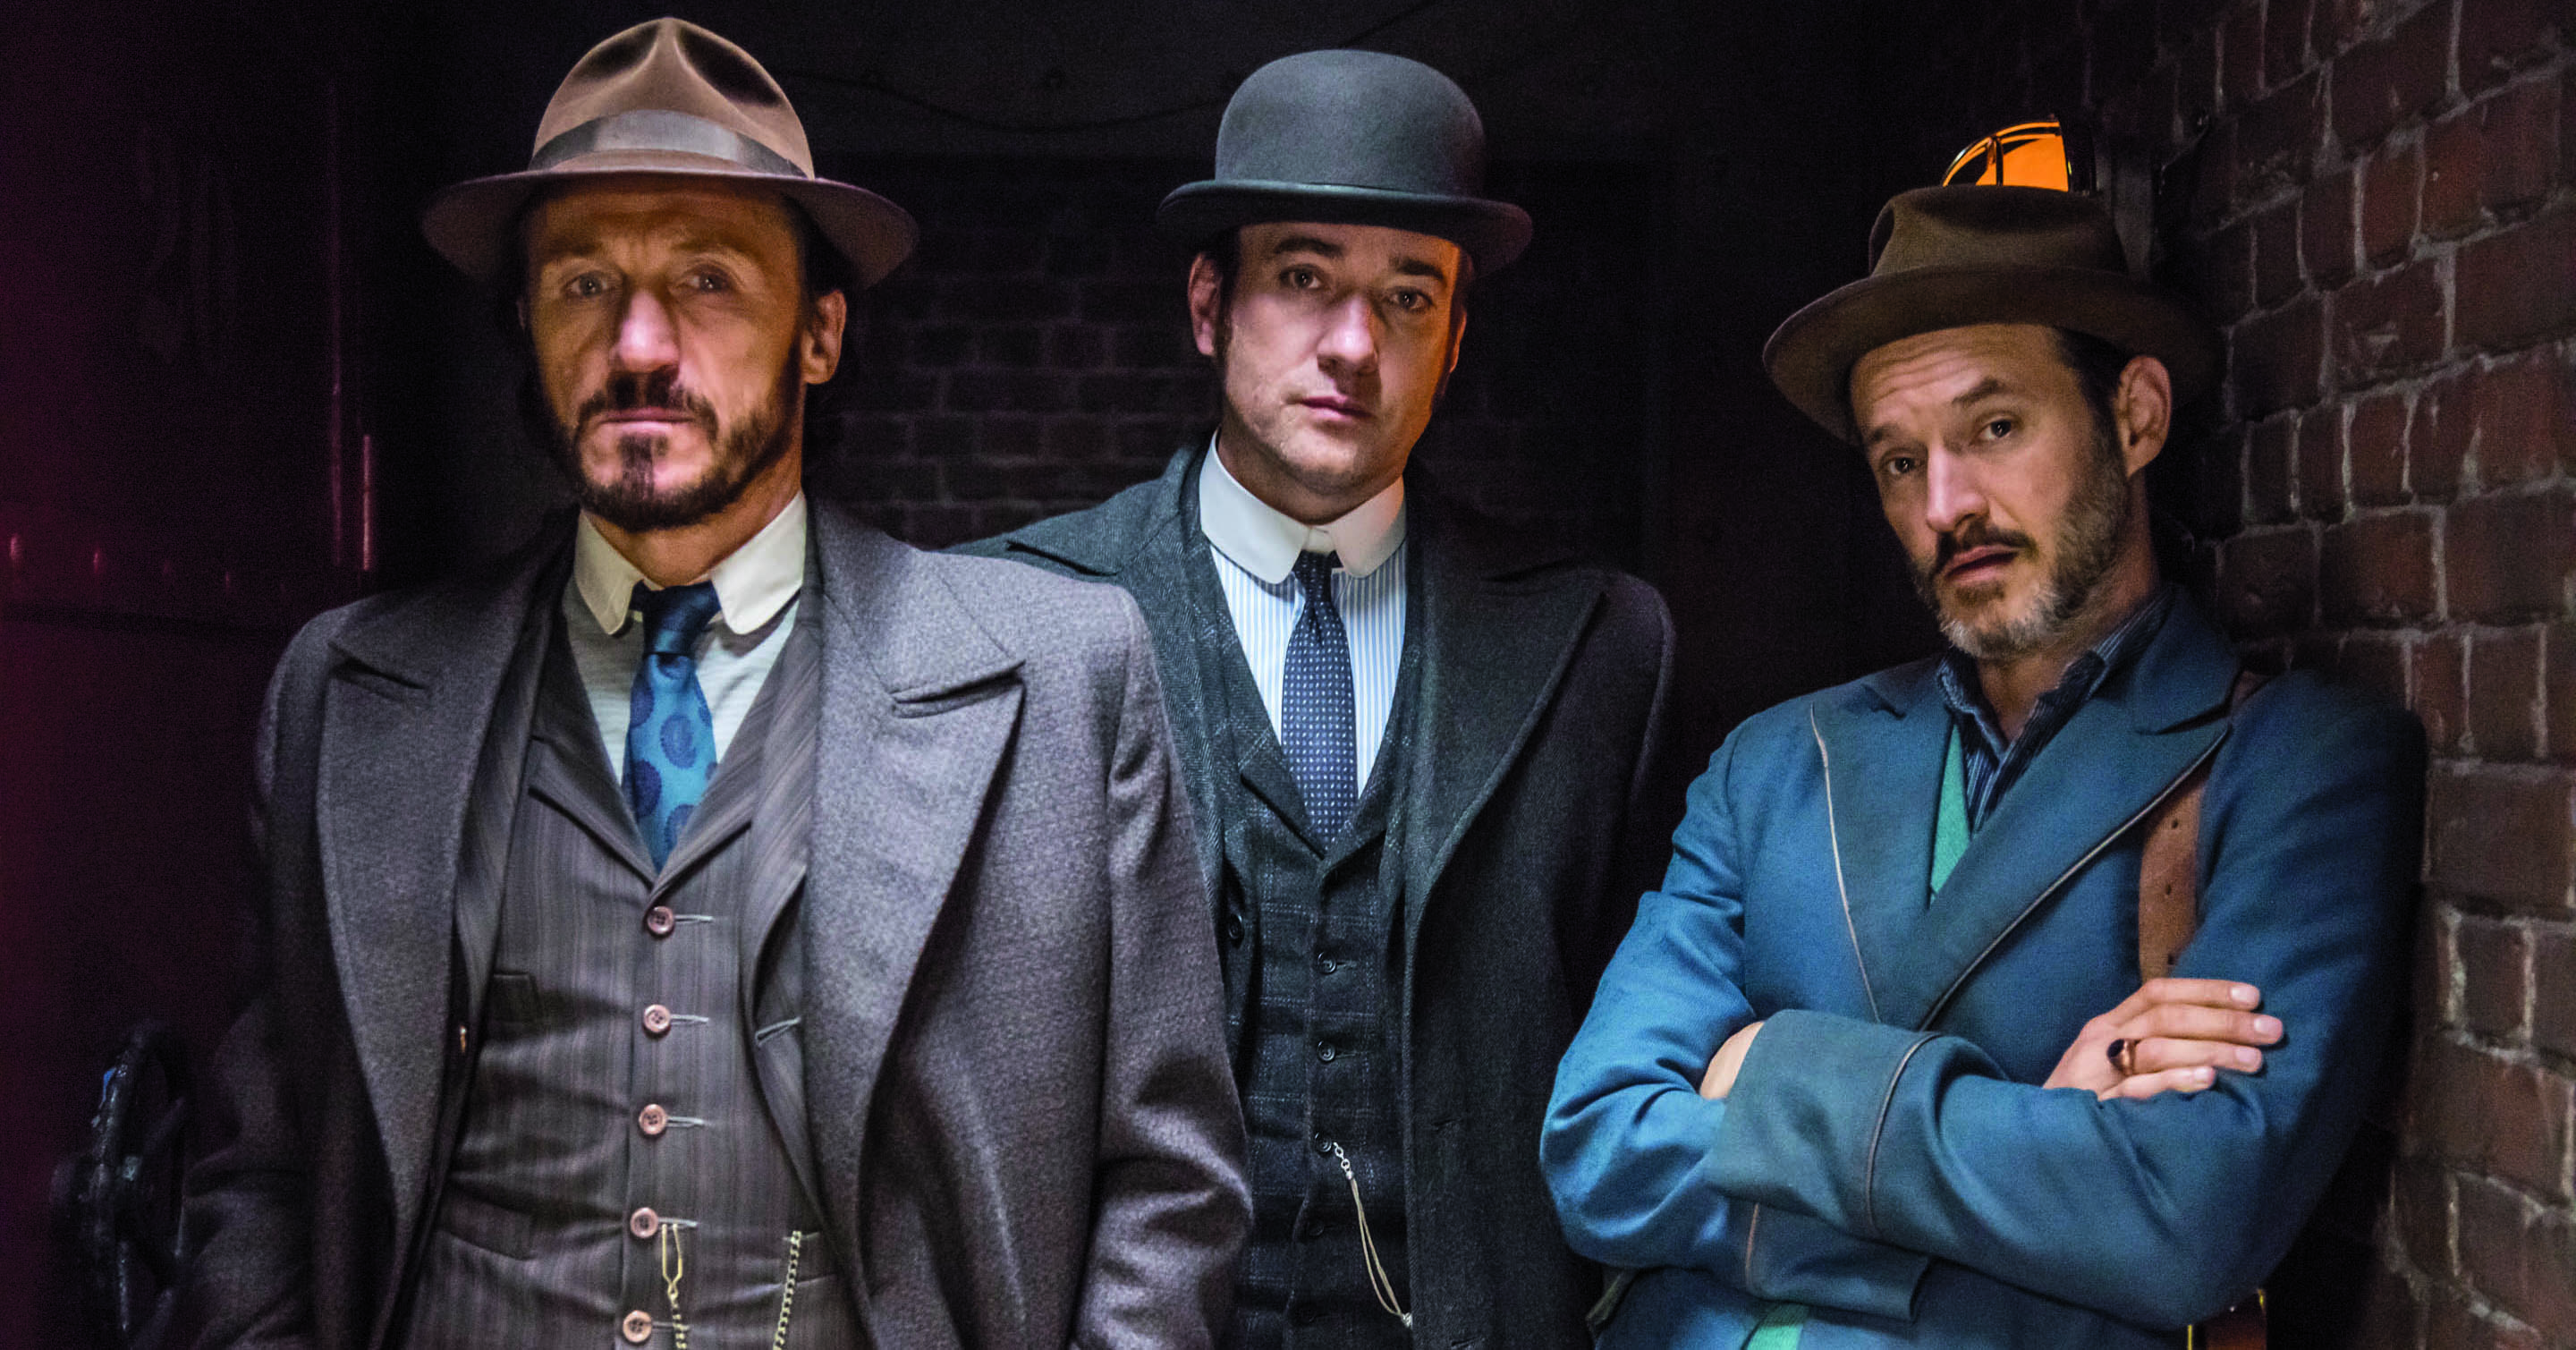 Reid (Matthew Macfadyen) has dusted off his bowler hat to continue the investigation into the murder of a rabbi, which Inspector Drake (Jerome Flynn) regards as cut-and-dried.